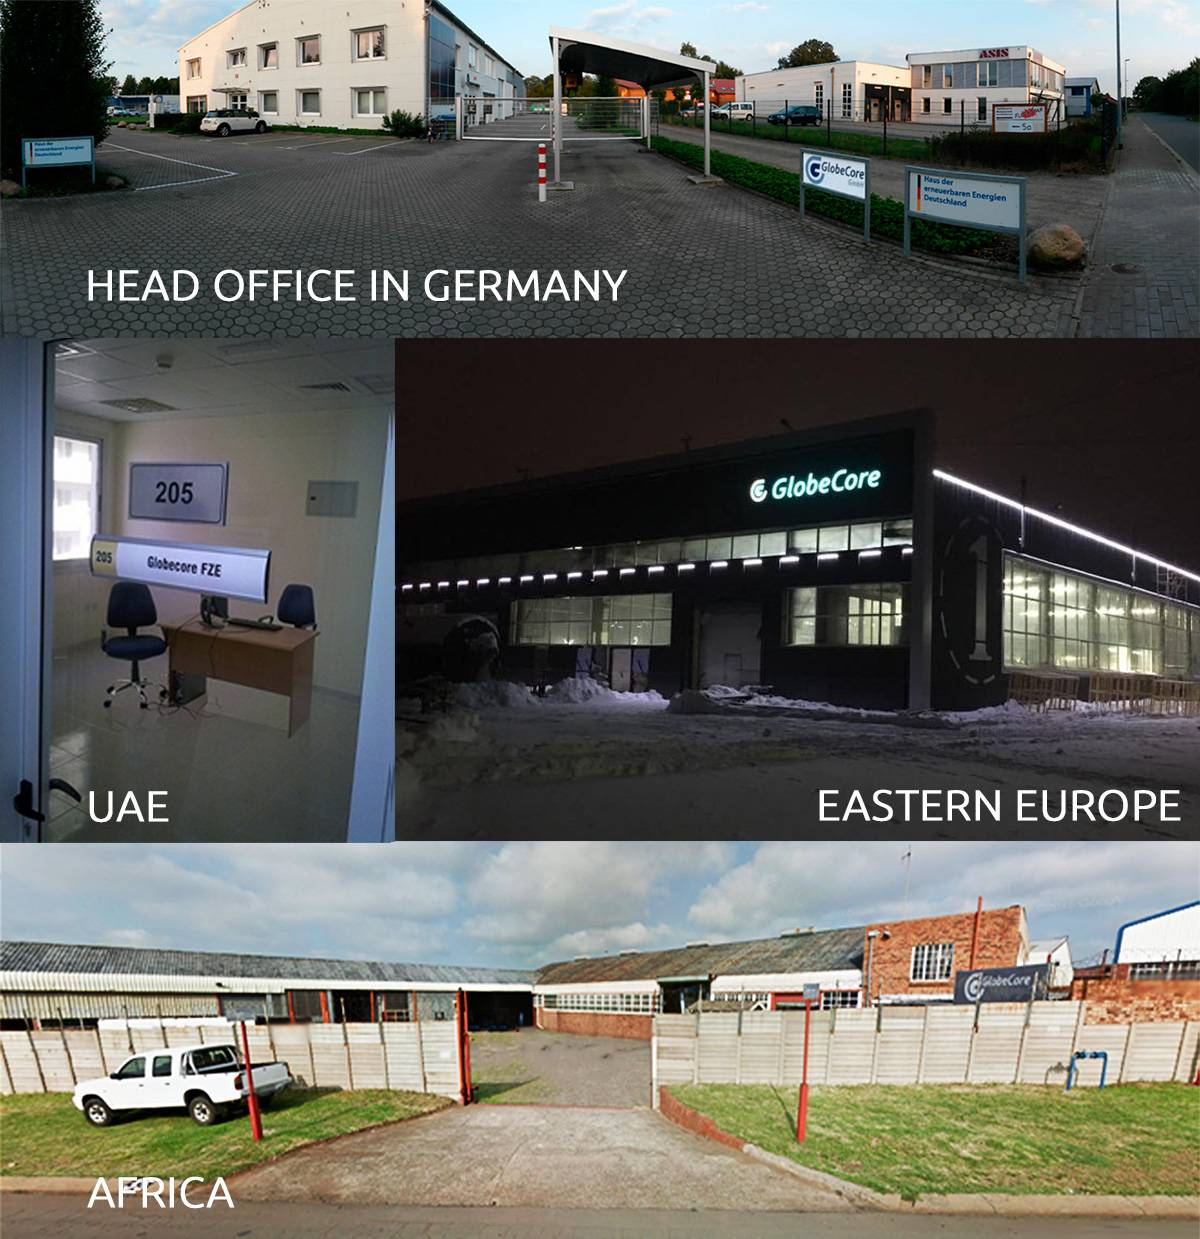 Globecore oil regeneration offices